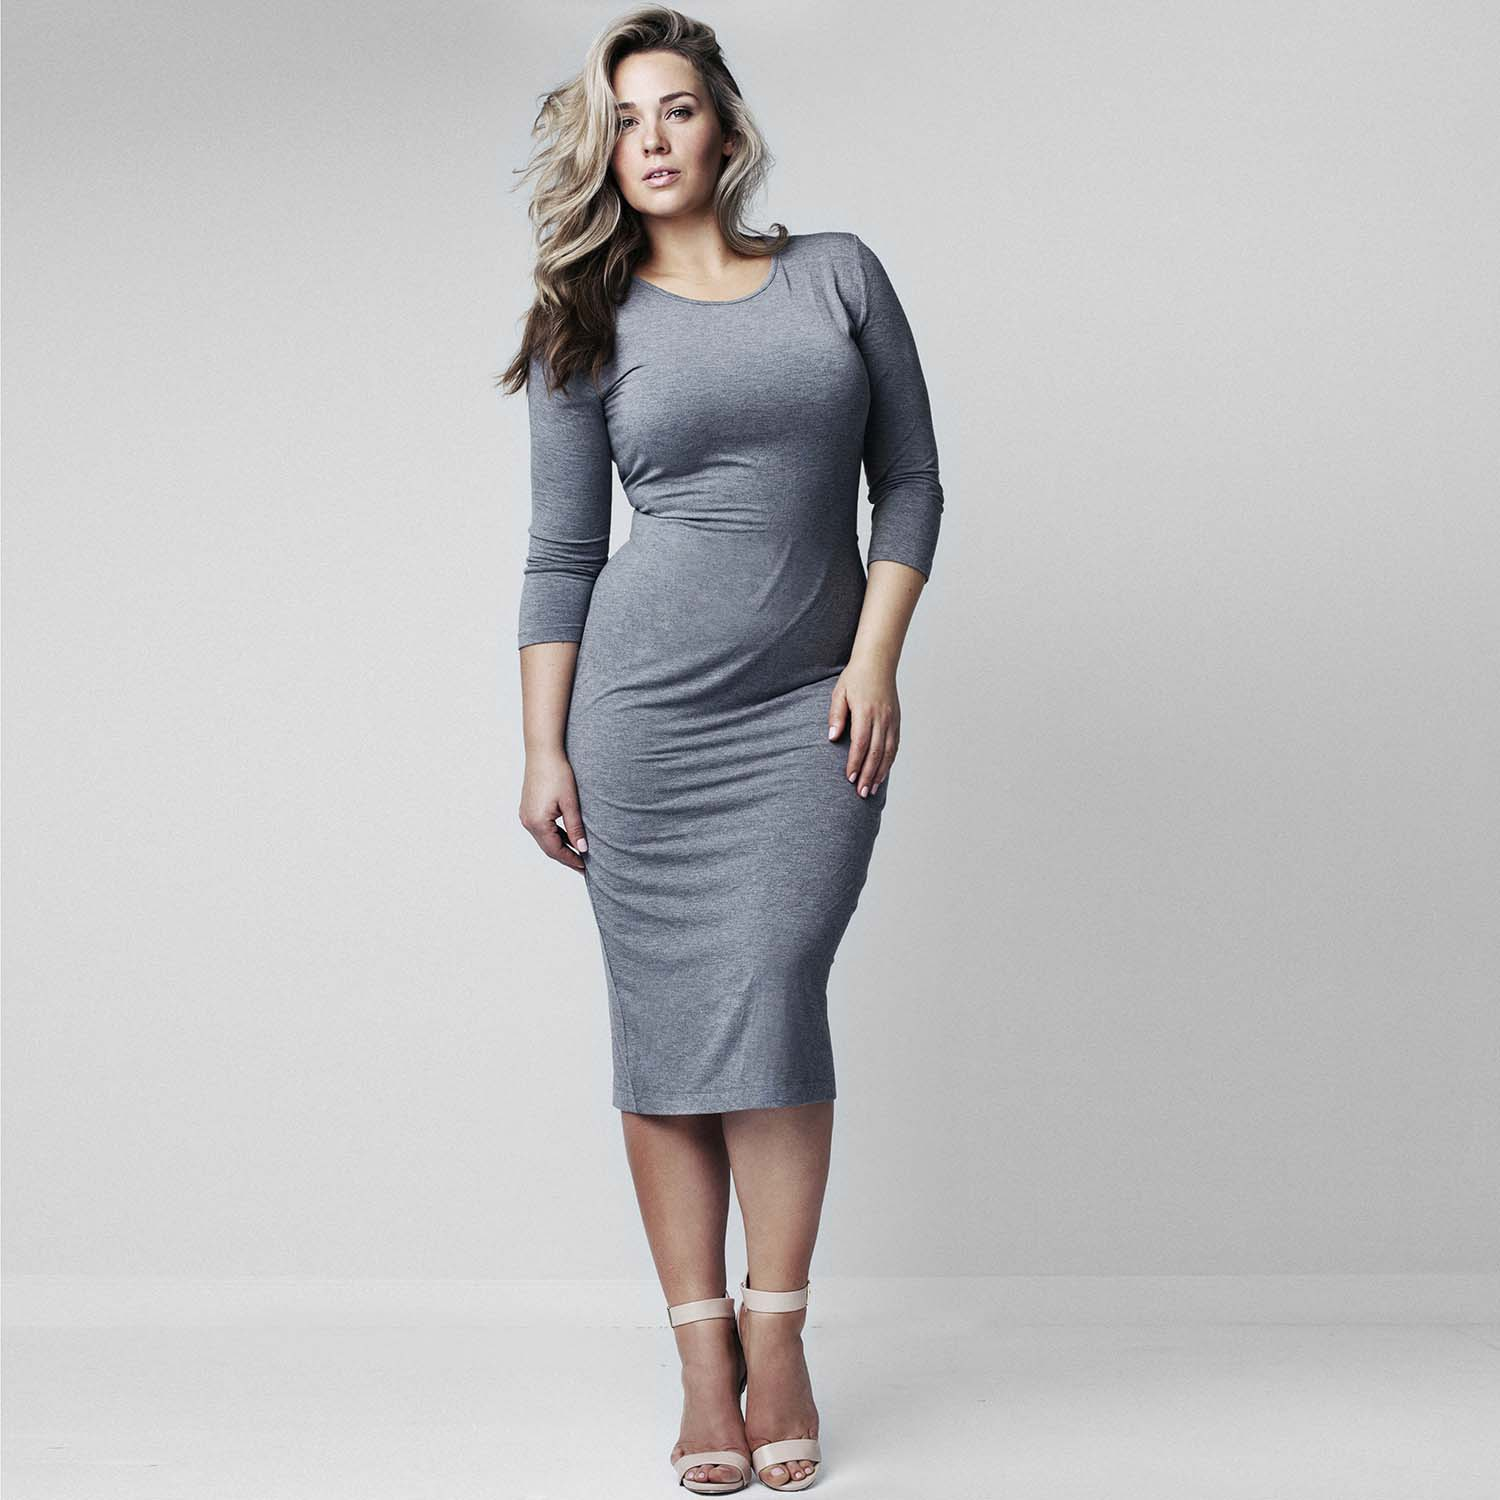 nyc-photographers-plus-size-model-test-10003.jpg